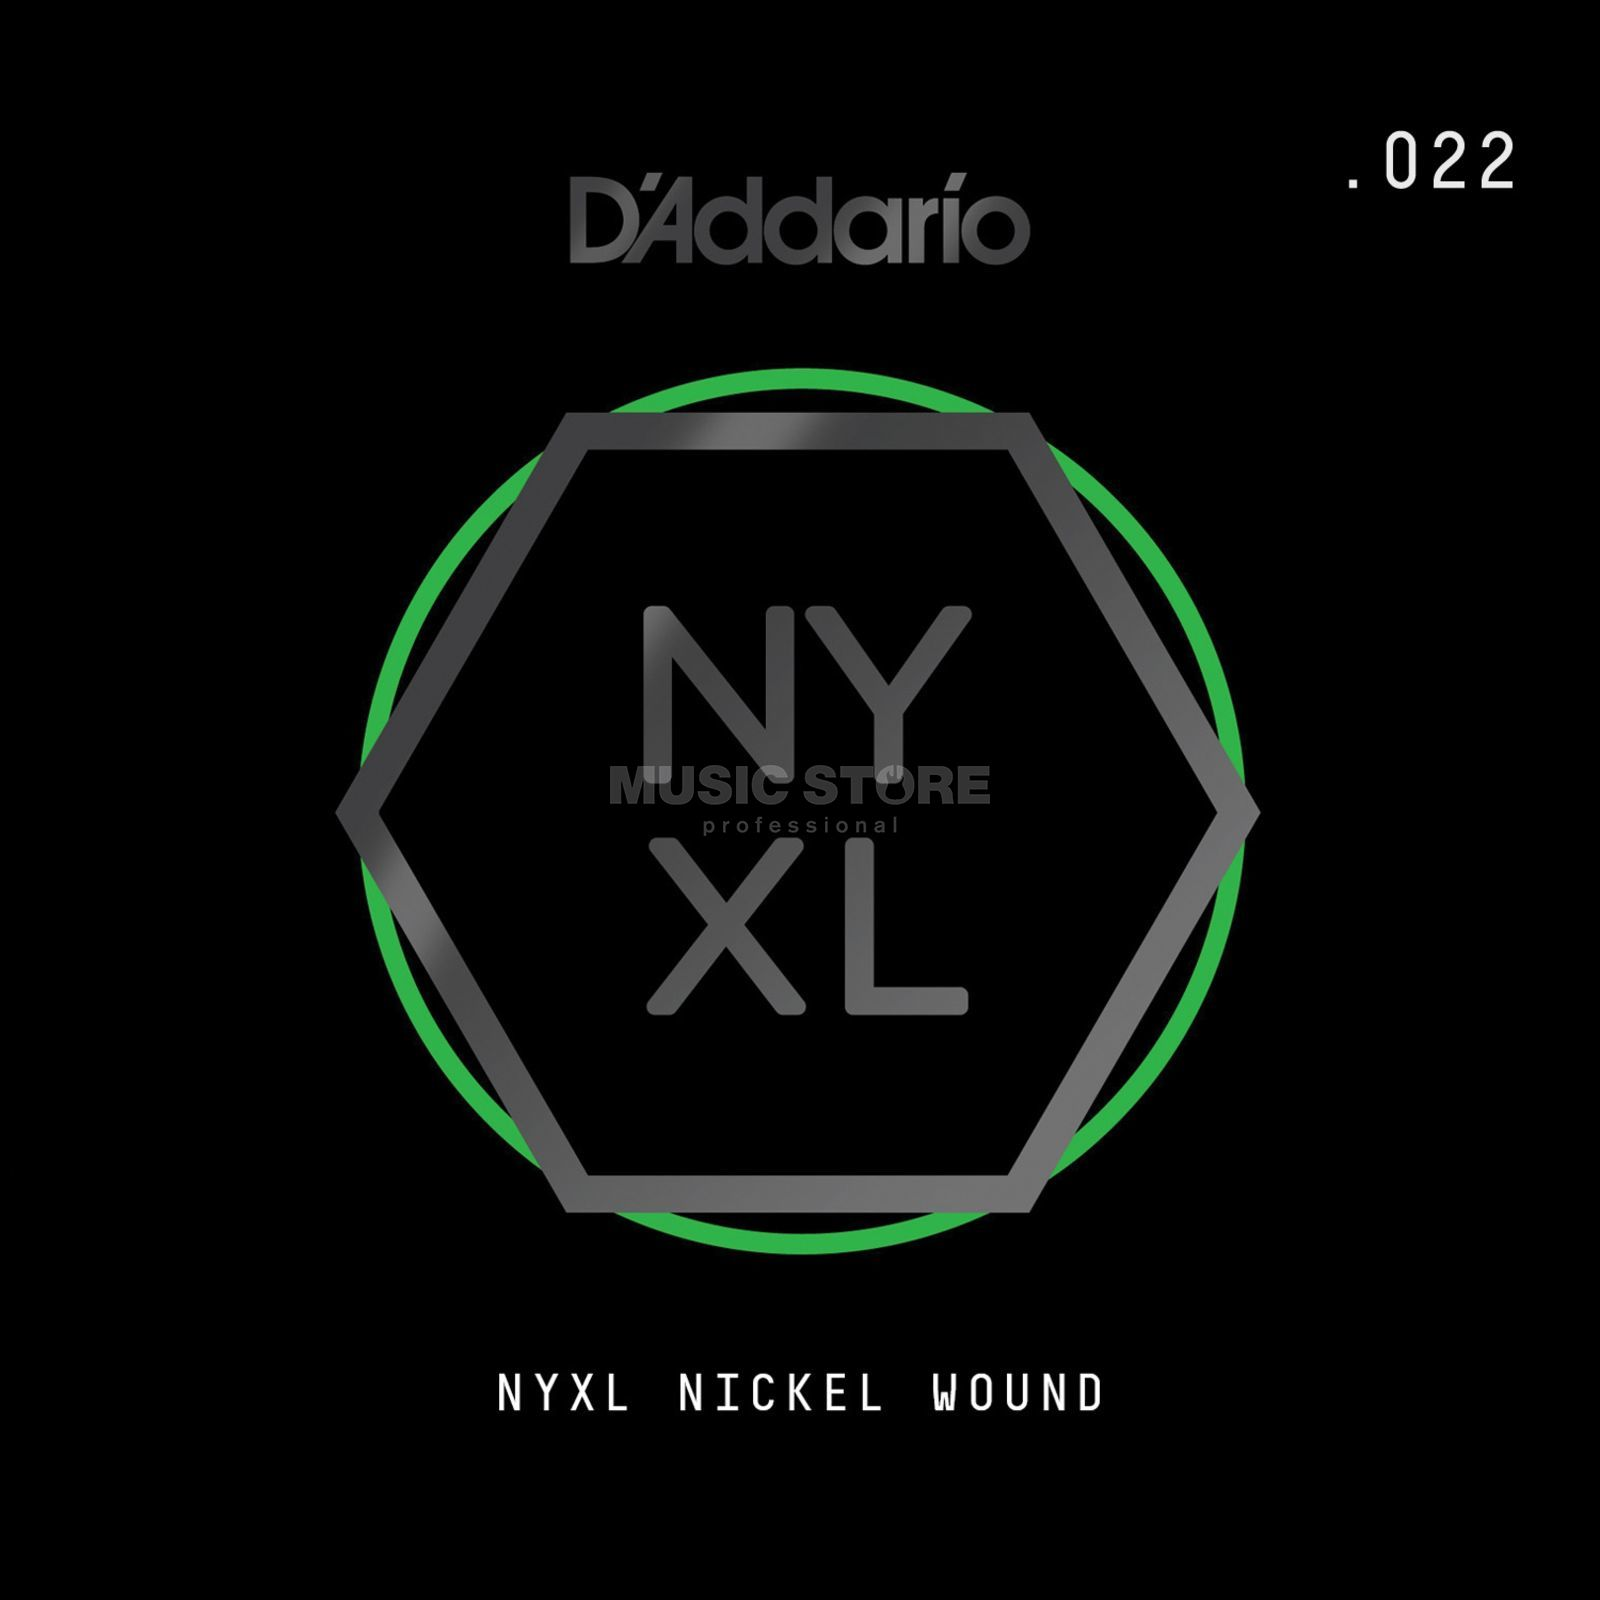 D'Addario NYNW022 Single String Nickel Wound Image du produit